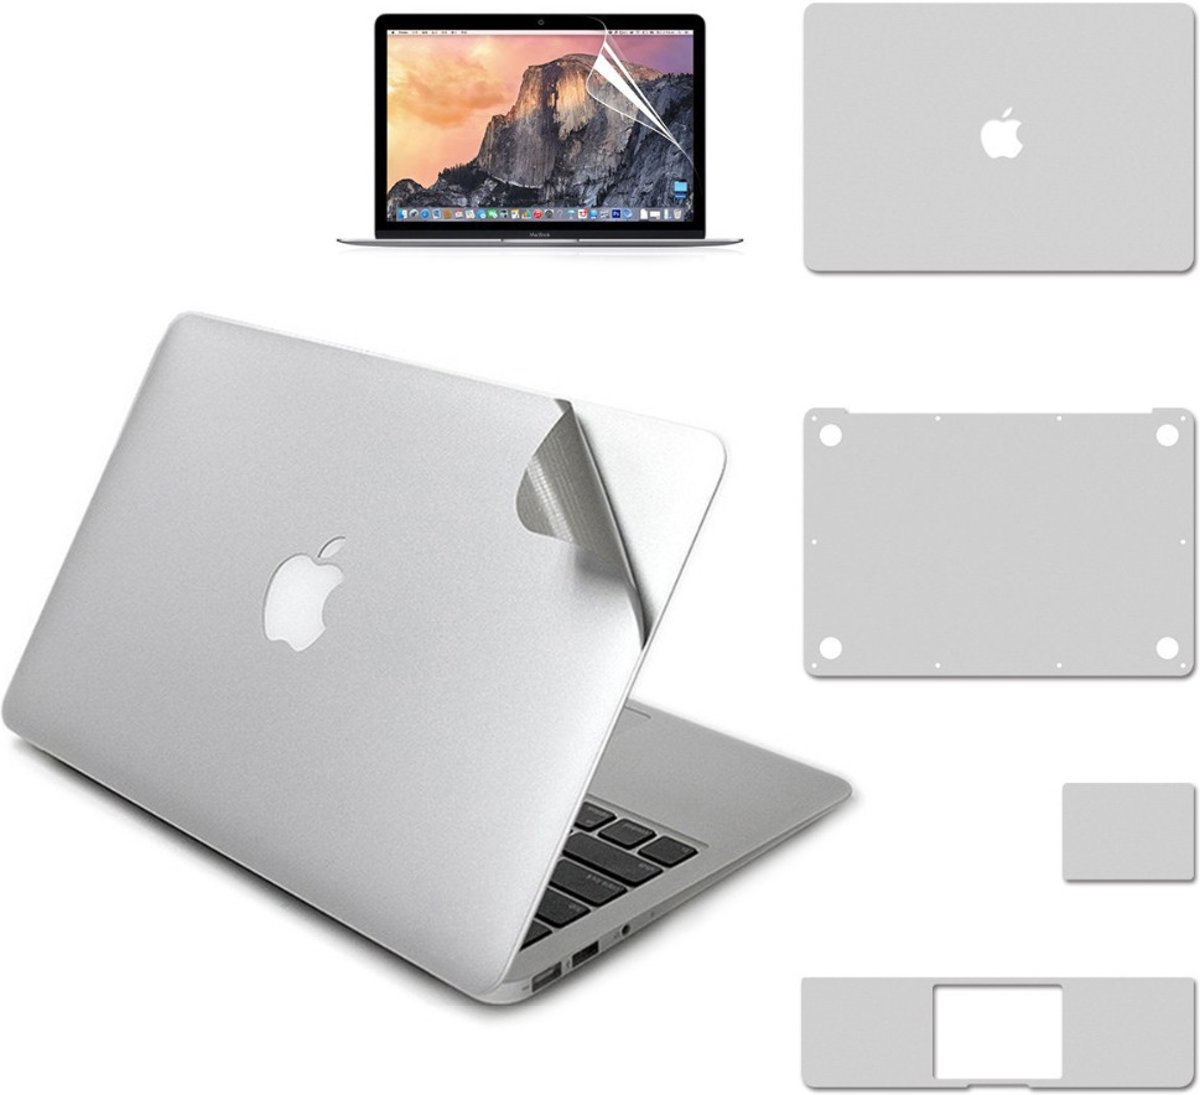 5-in-1 Nano Body Guard Anti Scratch 3M Protector voor Apple MacBook Pro 13 inch (No Touch Bar) A1708 - Grijs